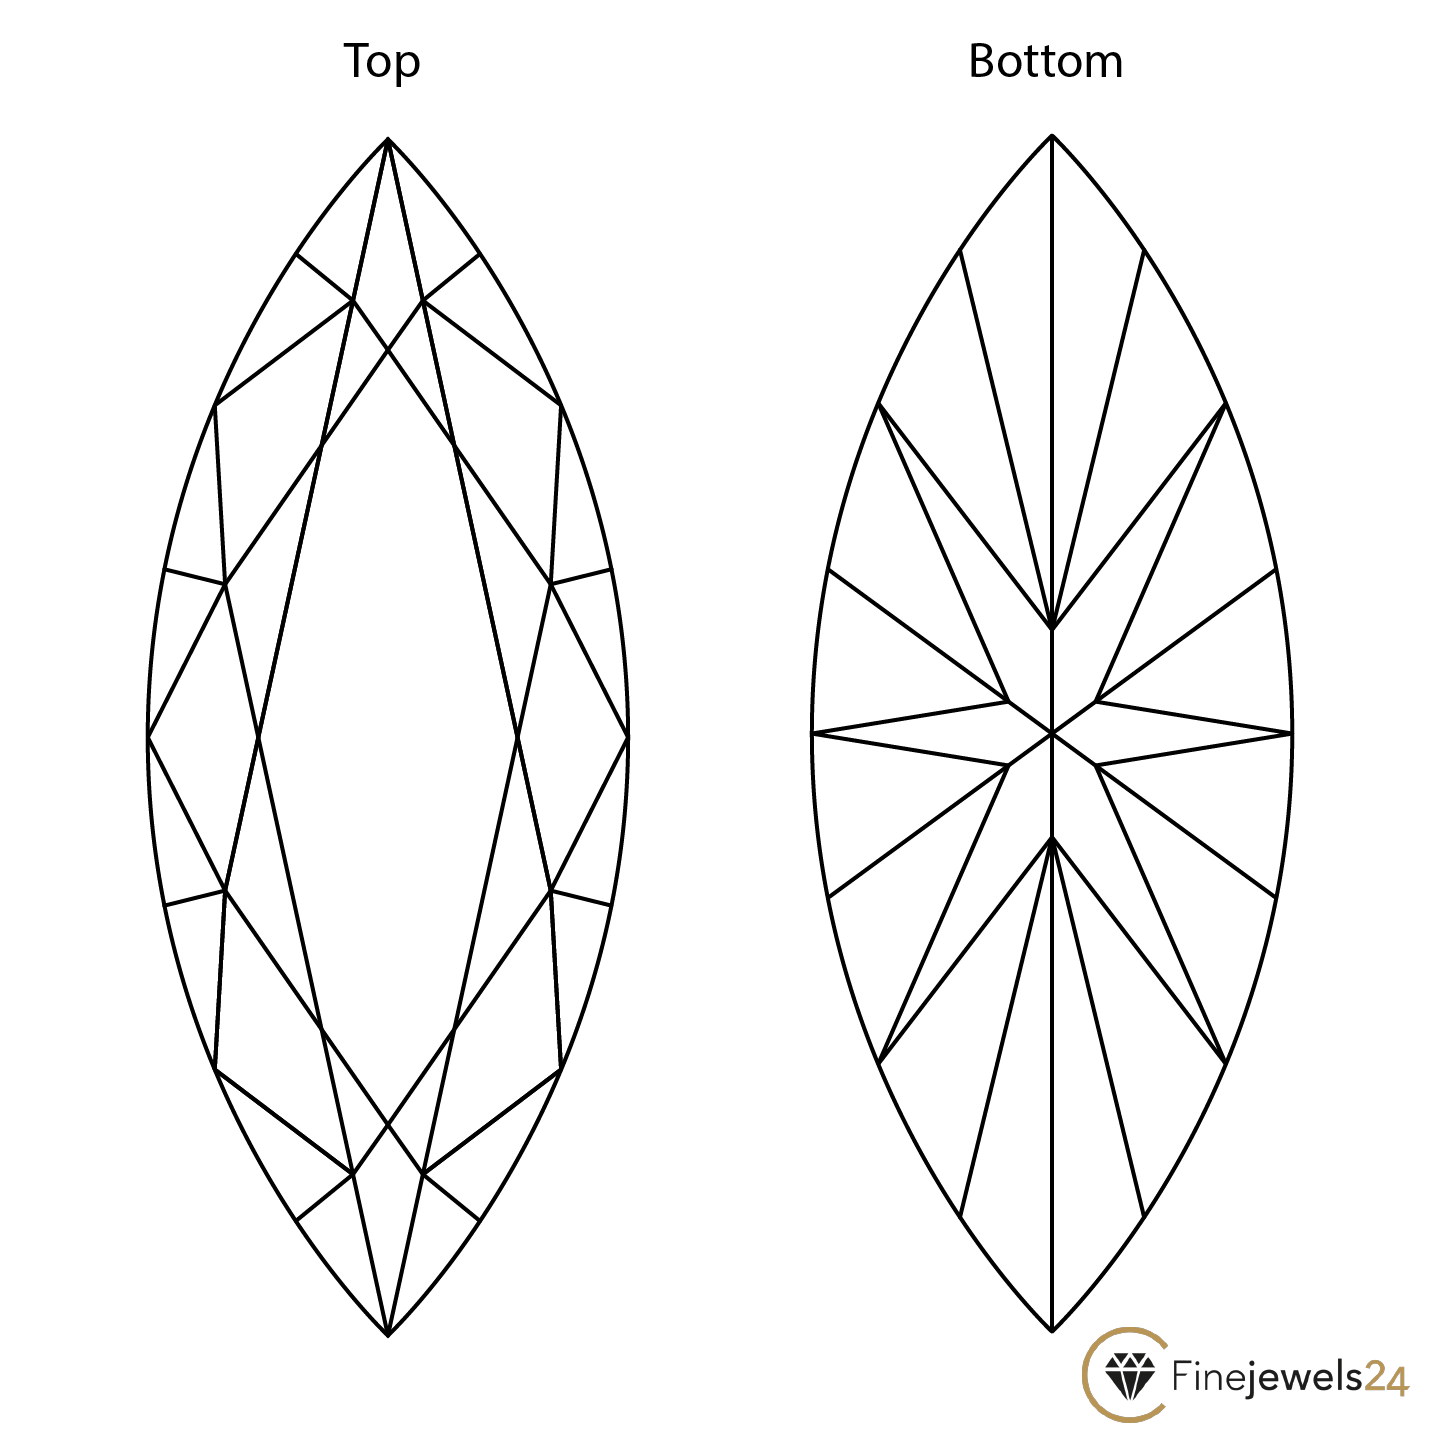 Marquise cut sketches of top and bottom view